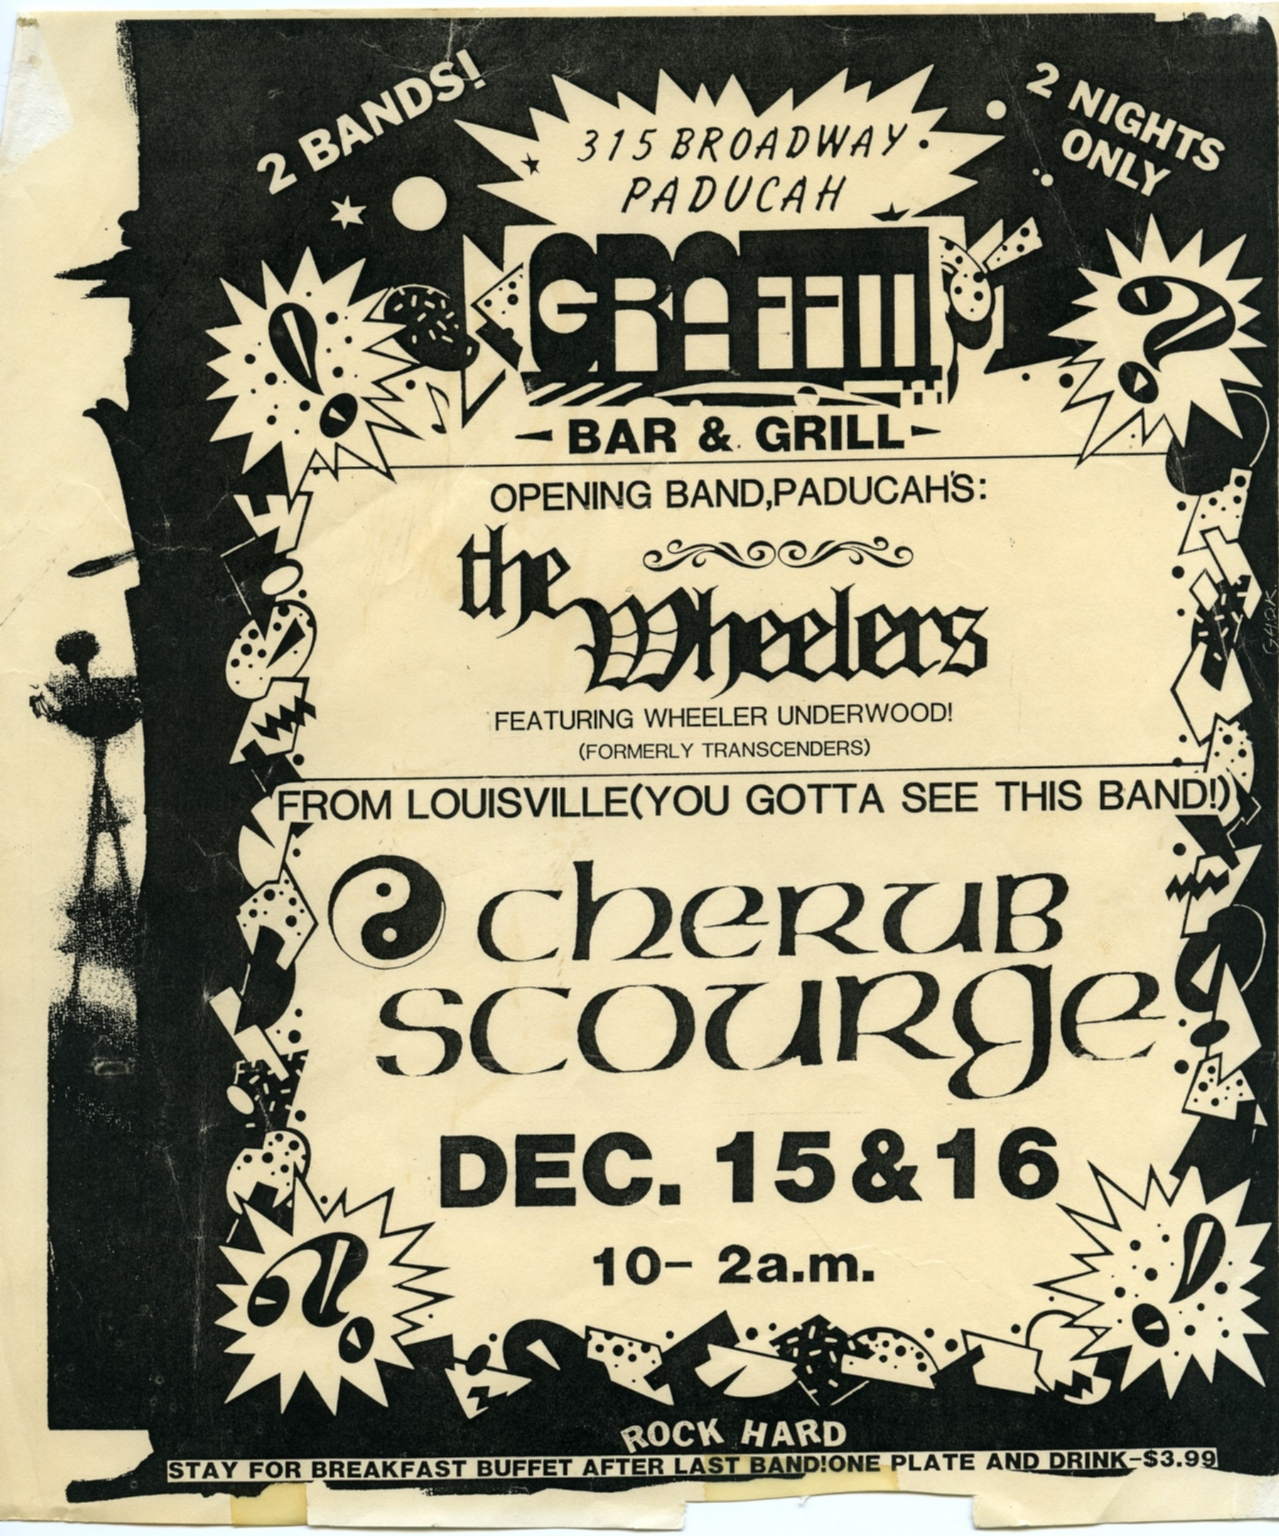 December 15th and 16th Graffiti Bar and Grill Show Flyer